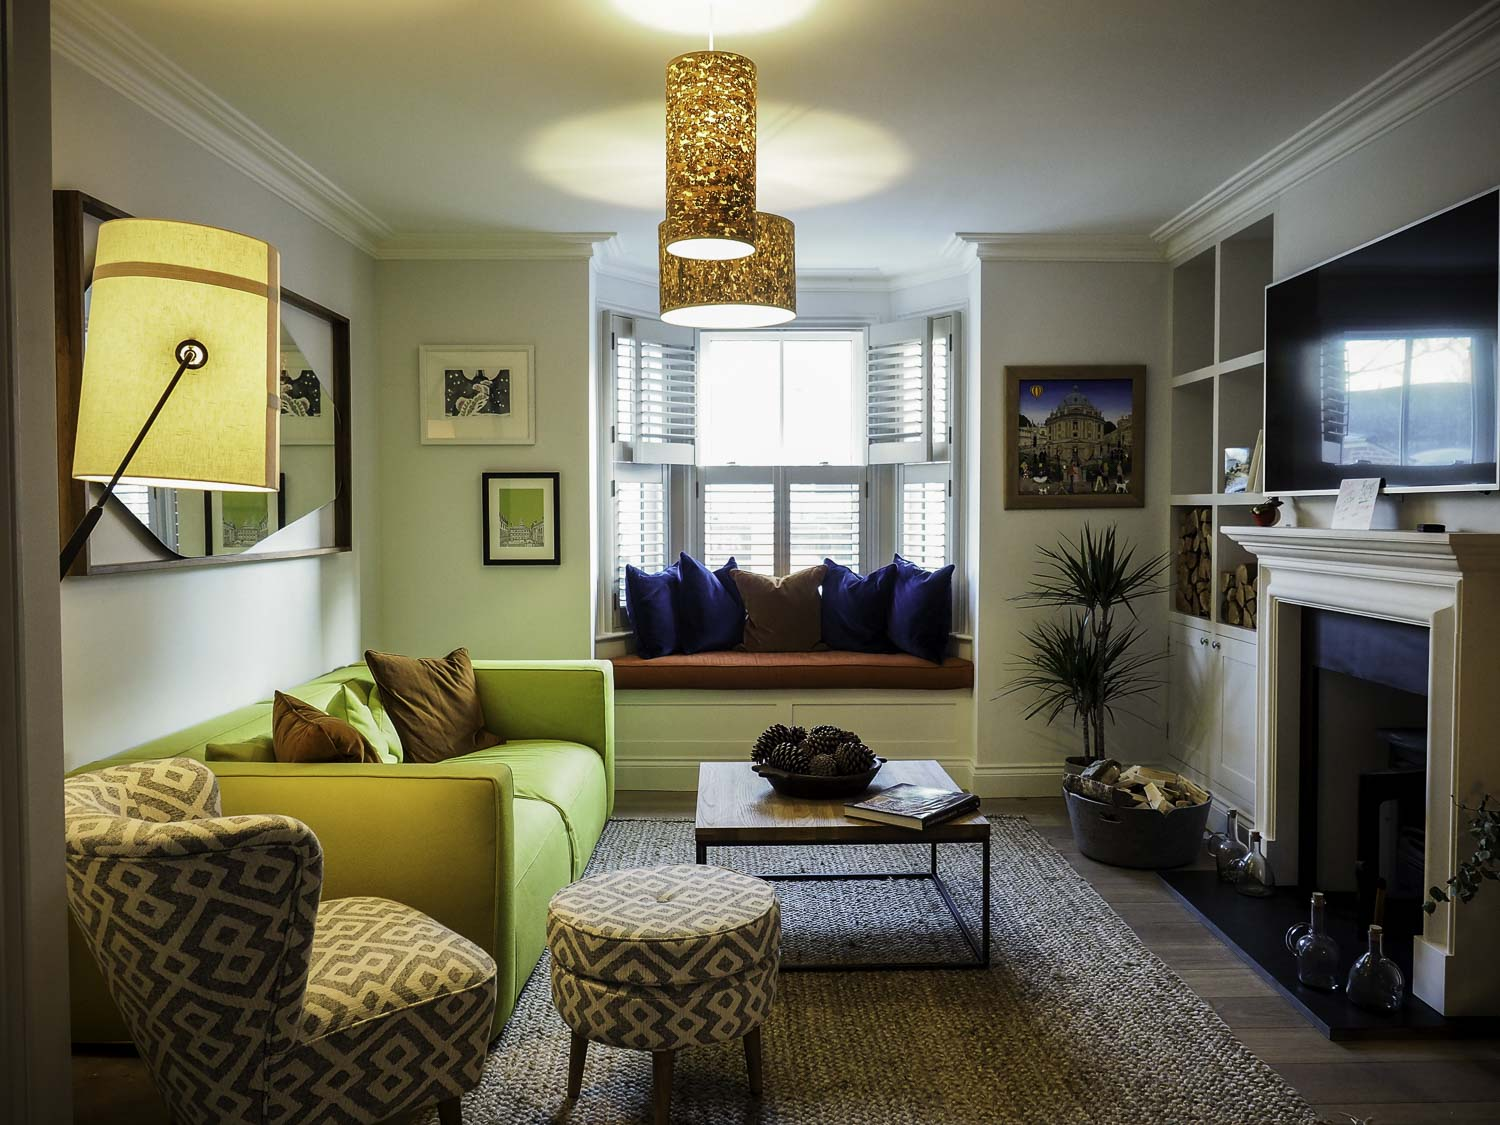 marlborough_road-sitting_room-1500pw-250kb.jpg